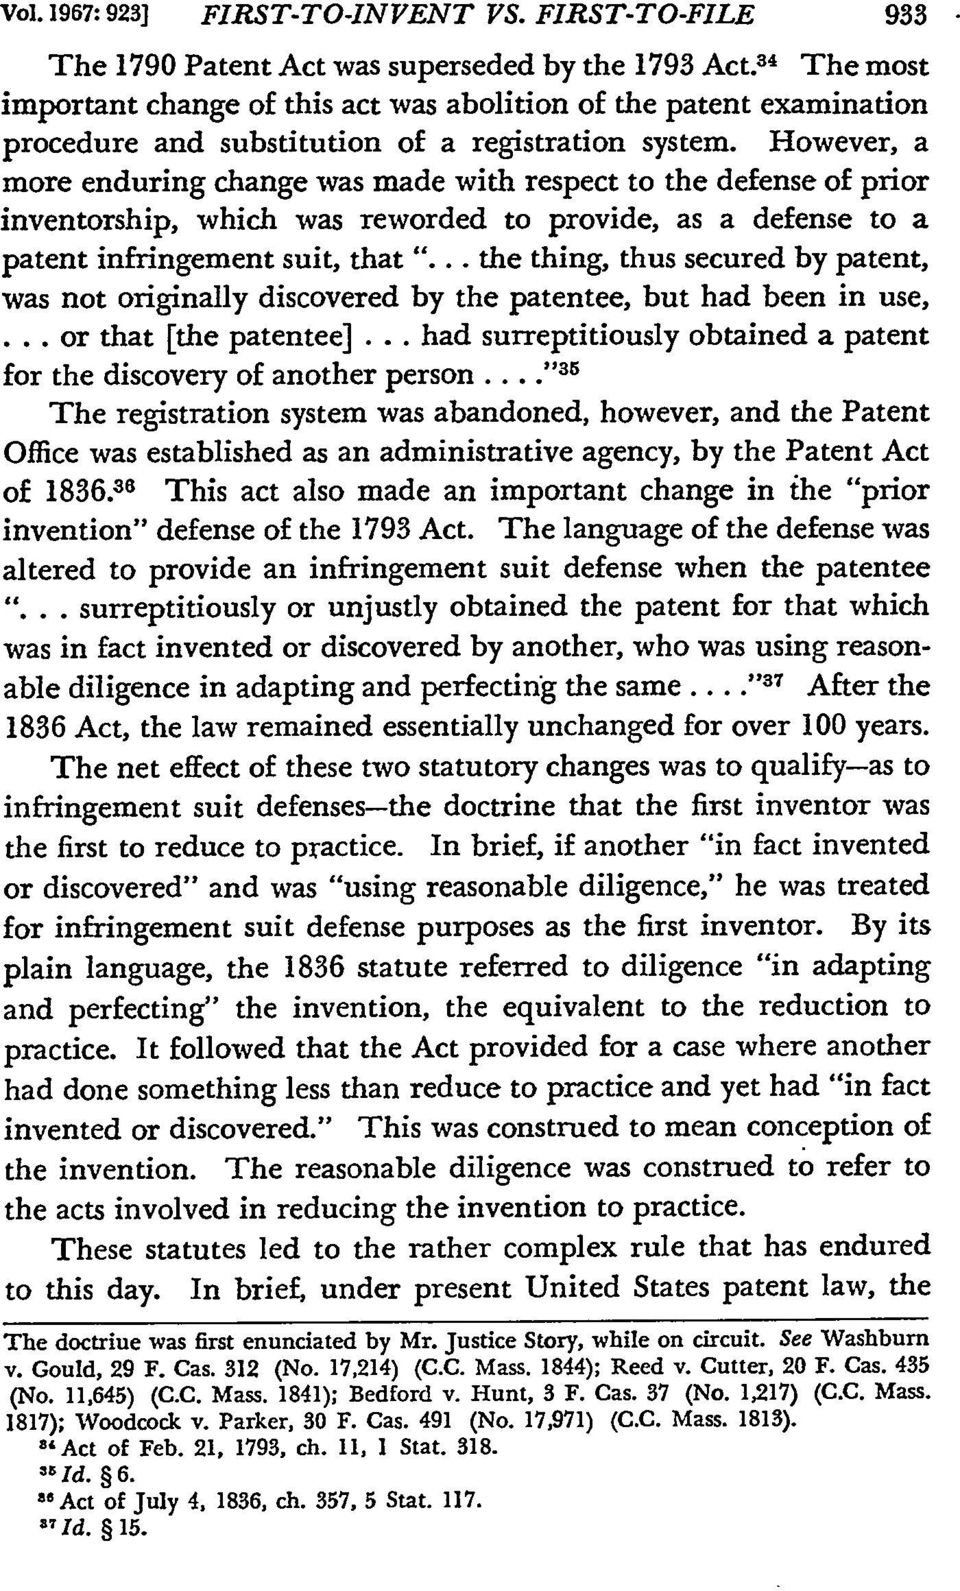 "However, a more enduring change was made with respect to the defense of prior inventorship, which was reworded to provide, as a defense to a patent infringement suit, that ""."